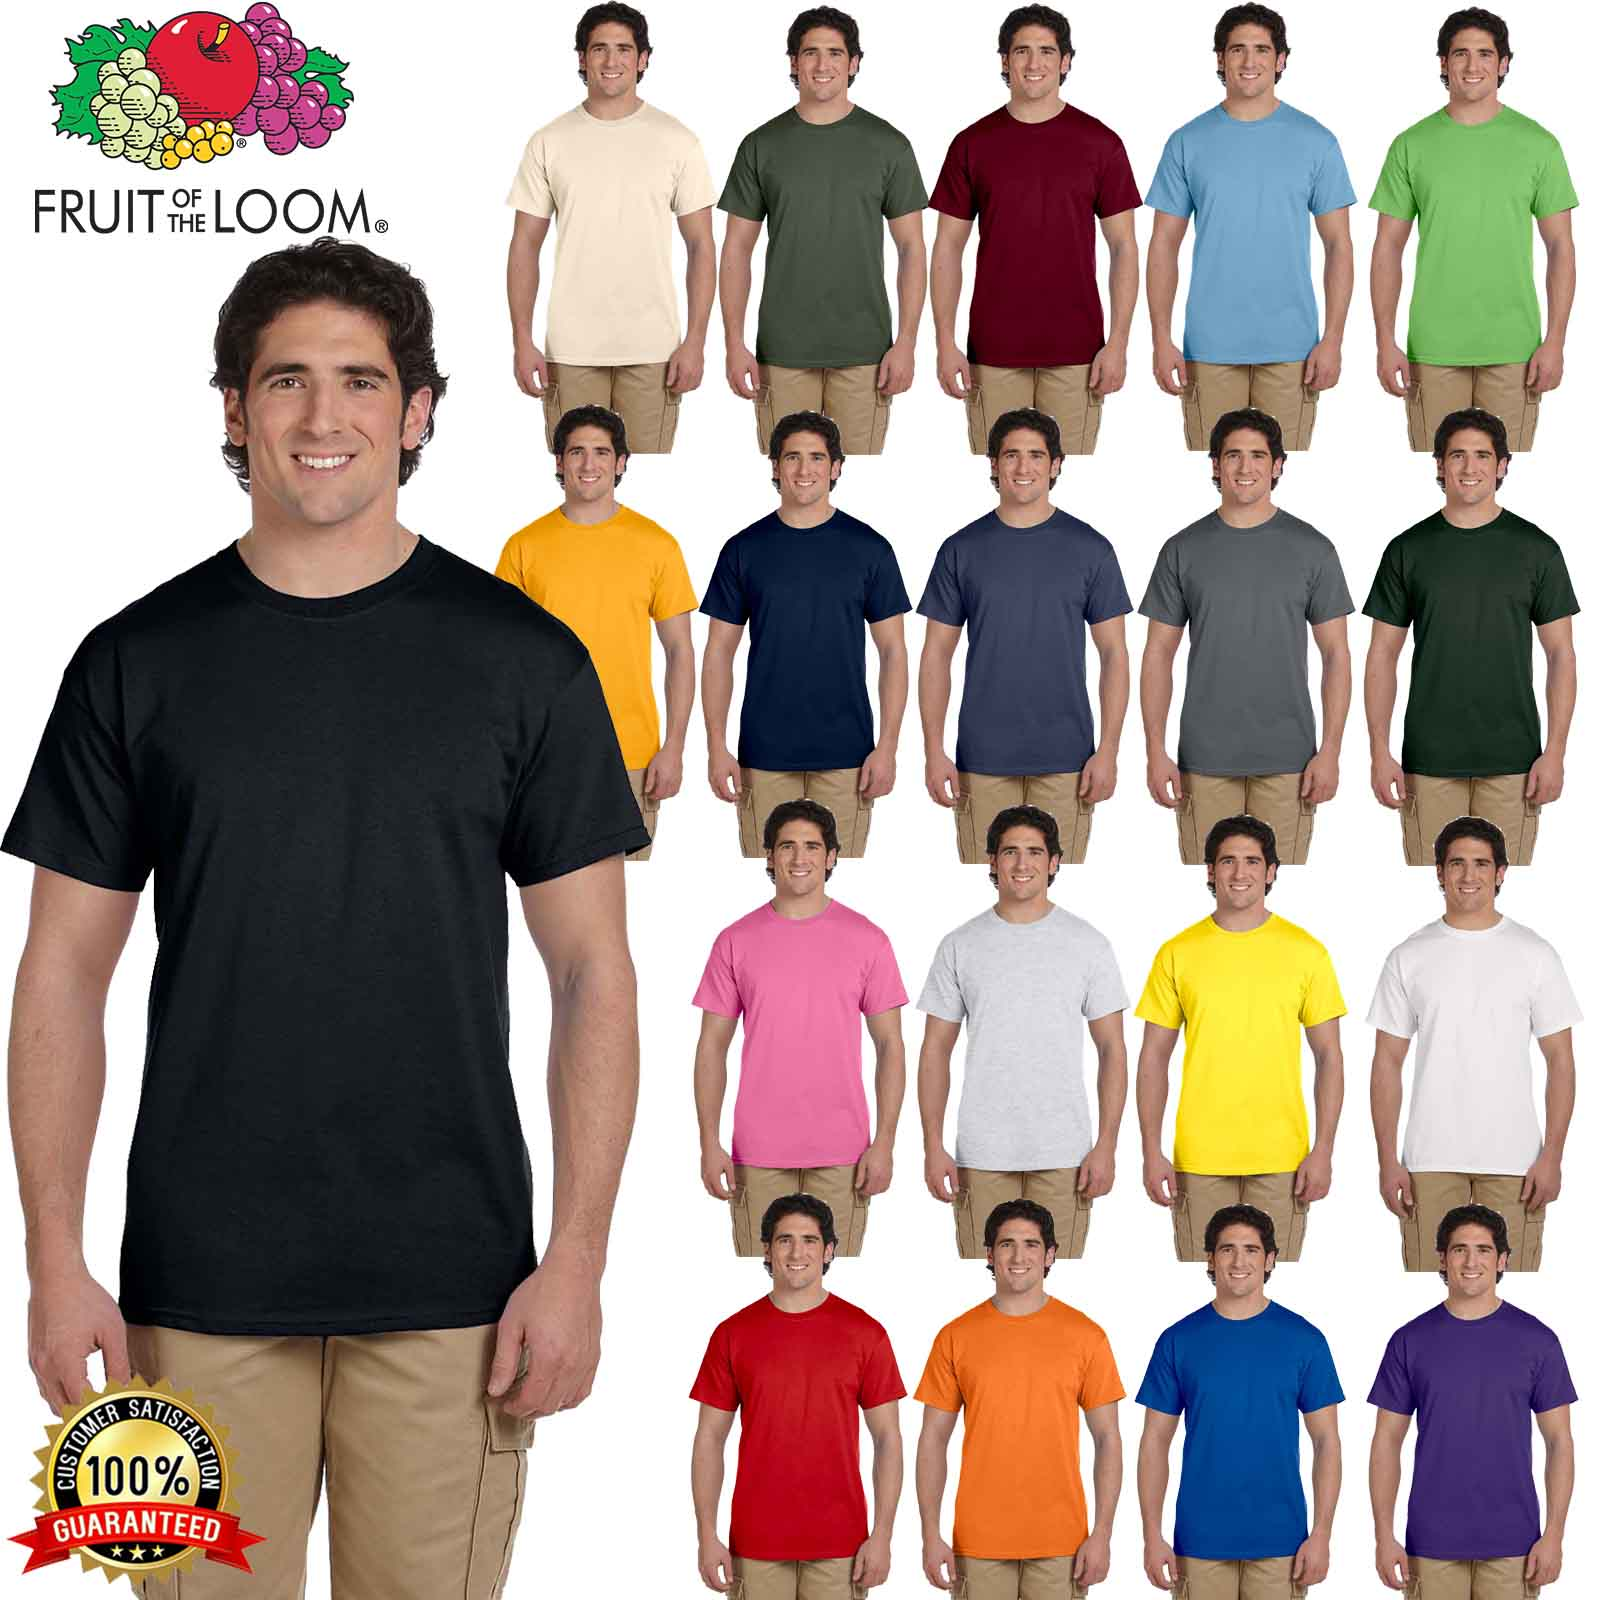 fruit of the loom mens t shirt s to xl blank hd cotton. Black Bedroom Furniture Sets. Home Design Ideas